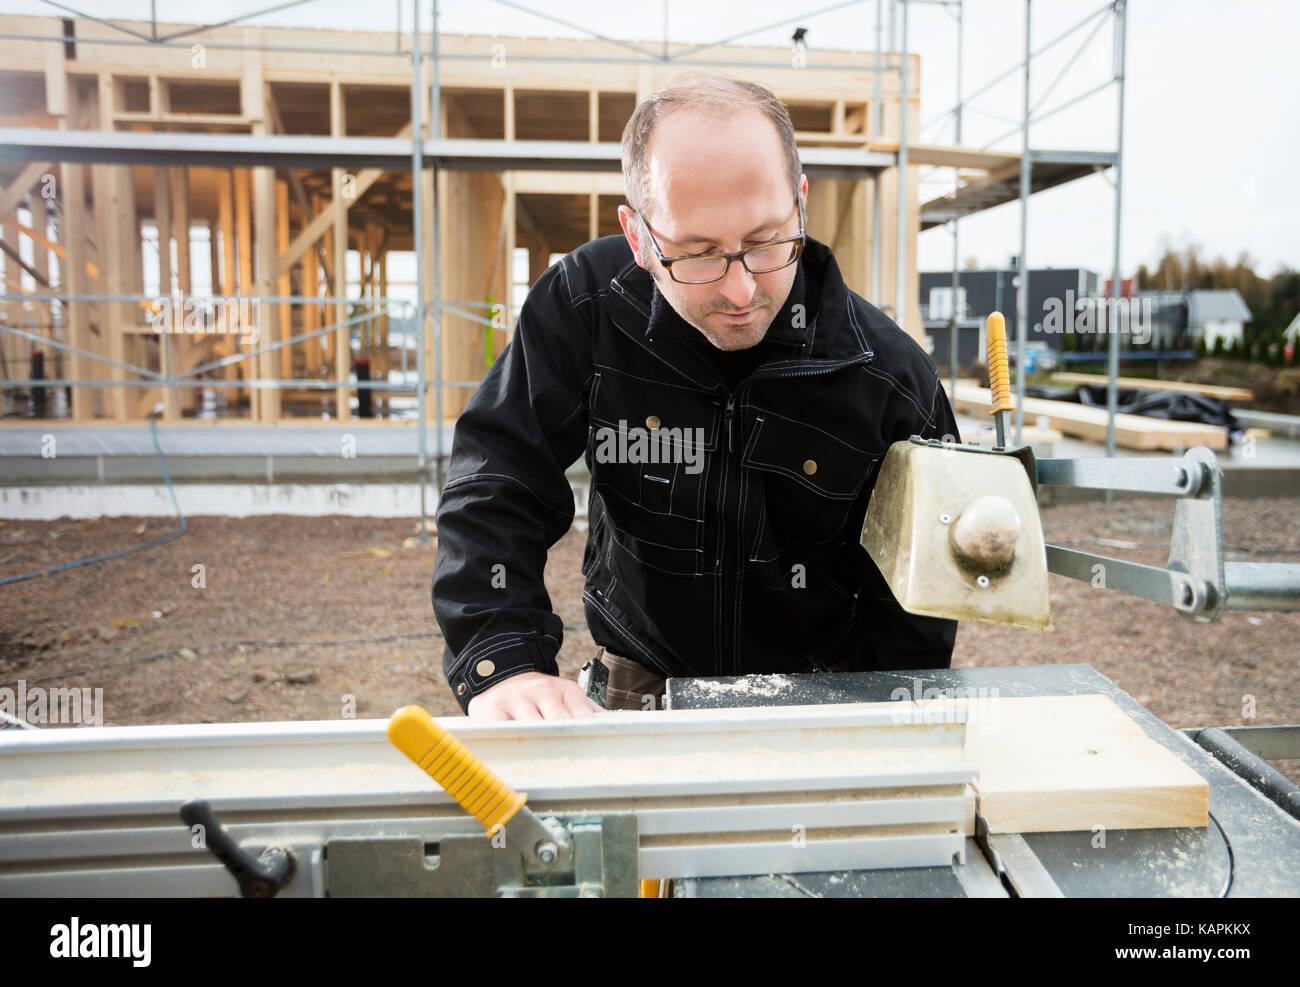 Carpenter Using Table Saw To Cut Plank At Site - Stock Image